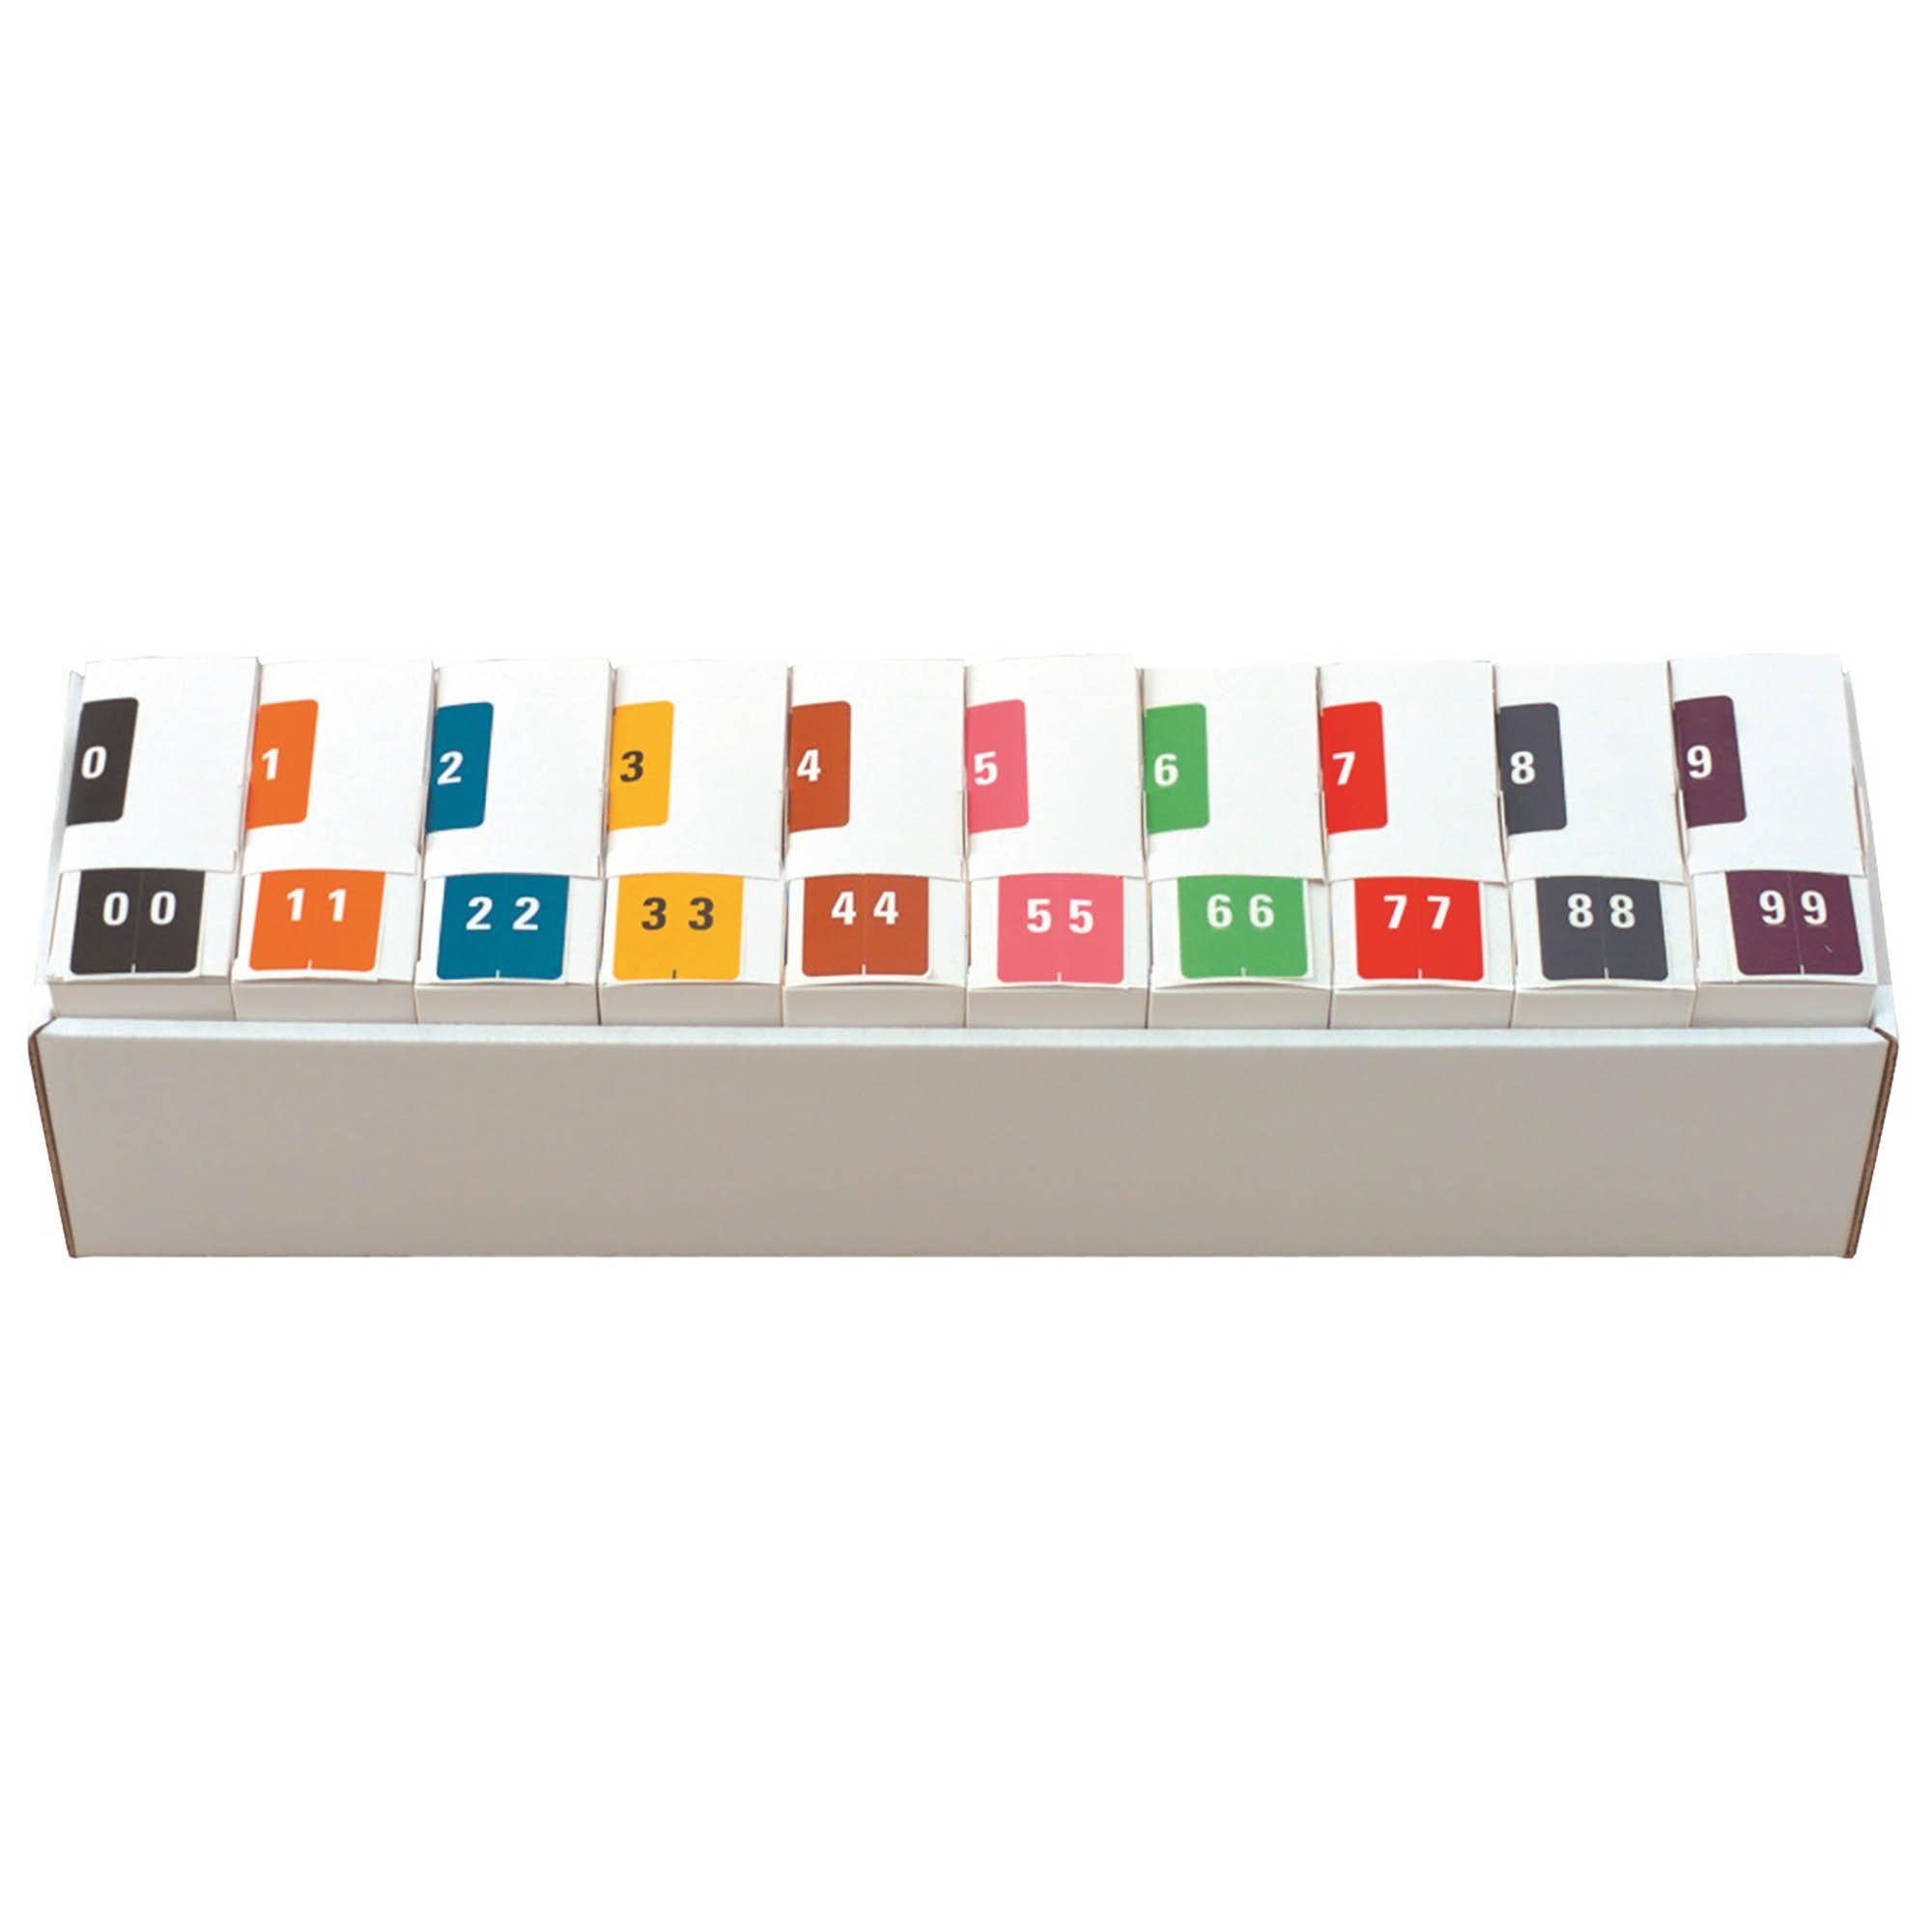 Kardex Match KDNM Series Numeric Roll Labels - Set of Number 0 To 9